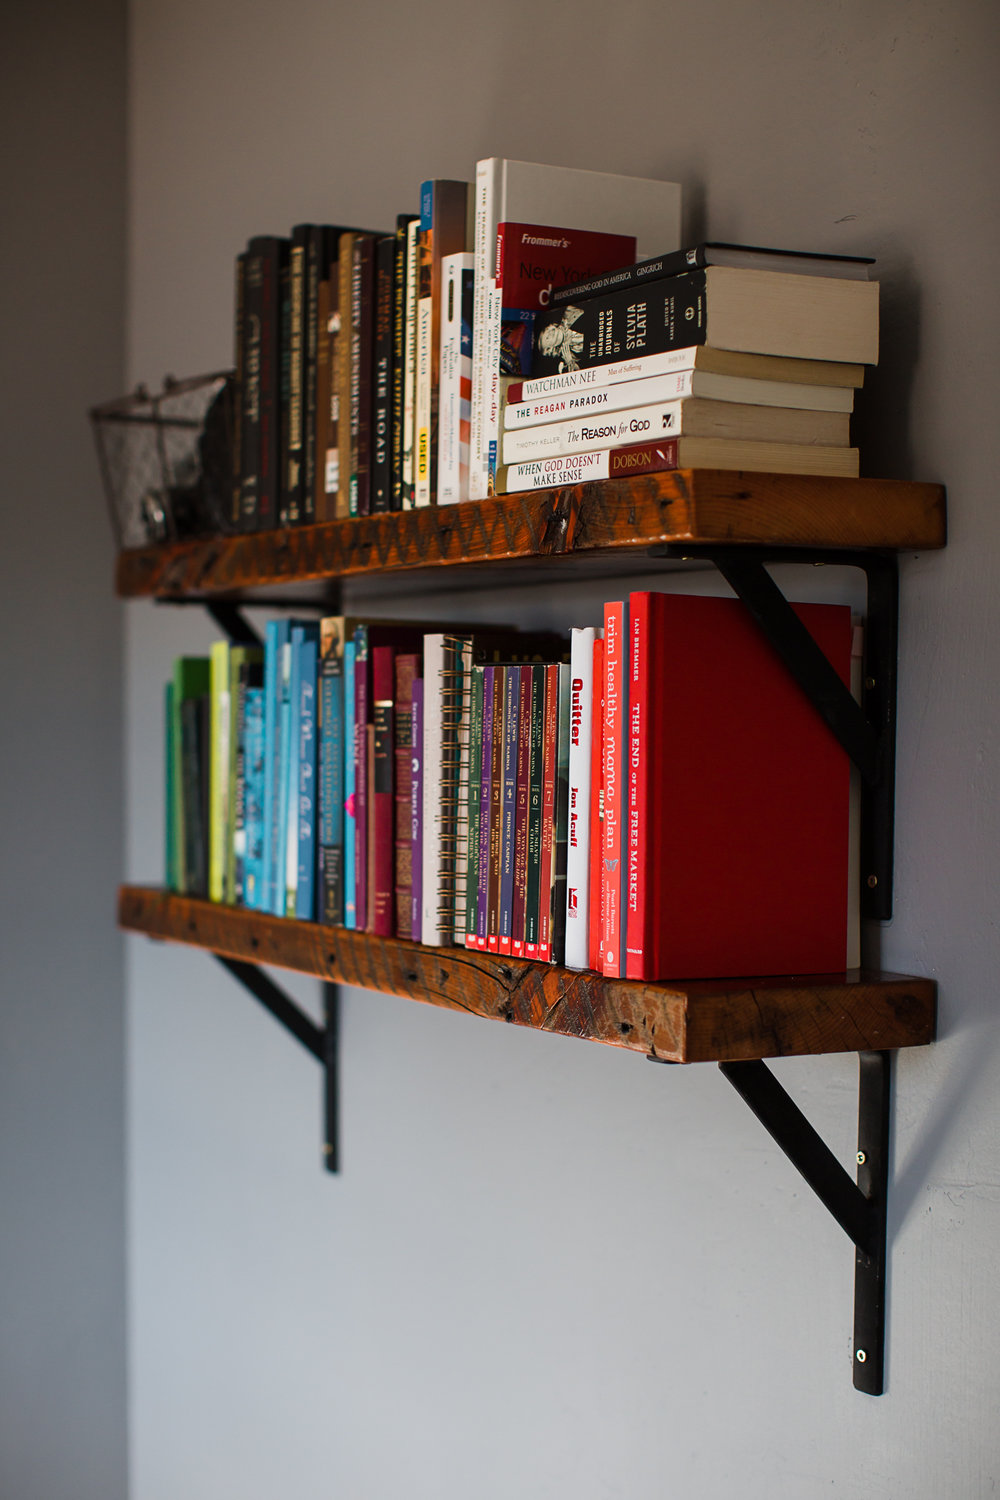 My dad also built these rustic shelves. They are made from reclaimed wood out of a barn that he tore down when I was a kid.